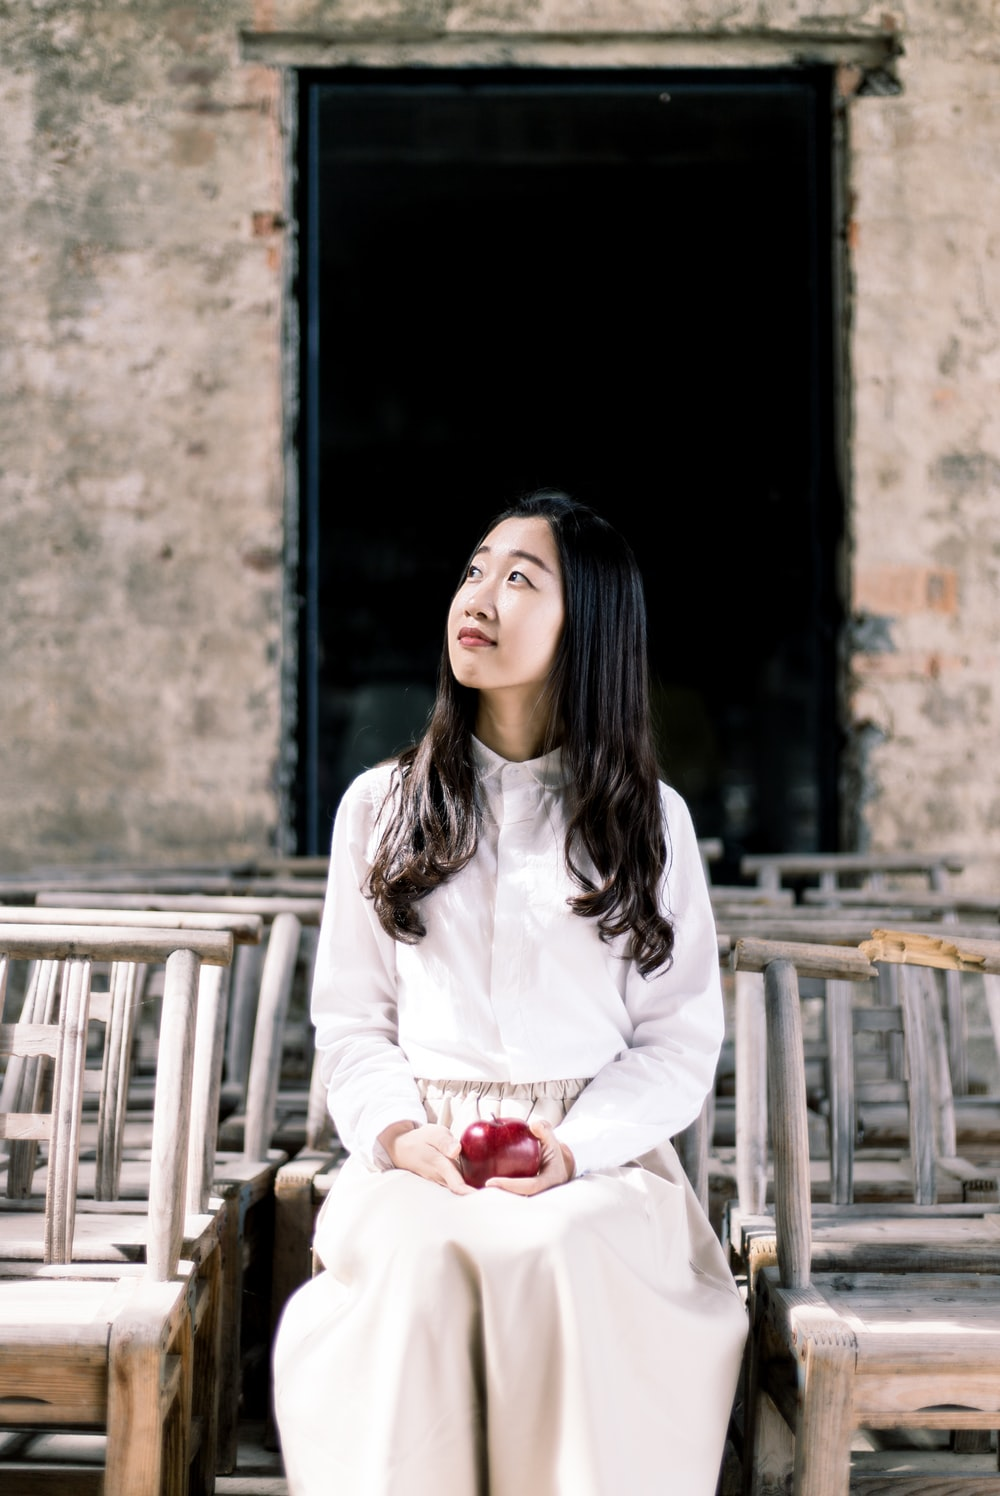 woman in white button-up dress shirt and white pants holding apple sitting on chair